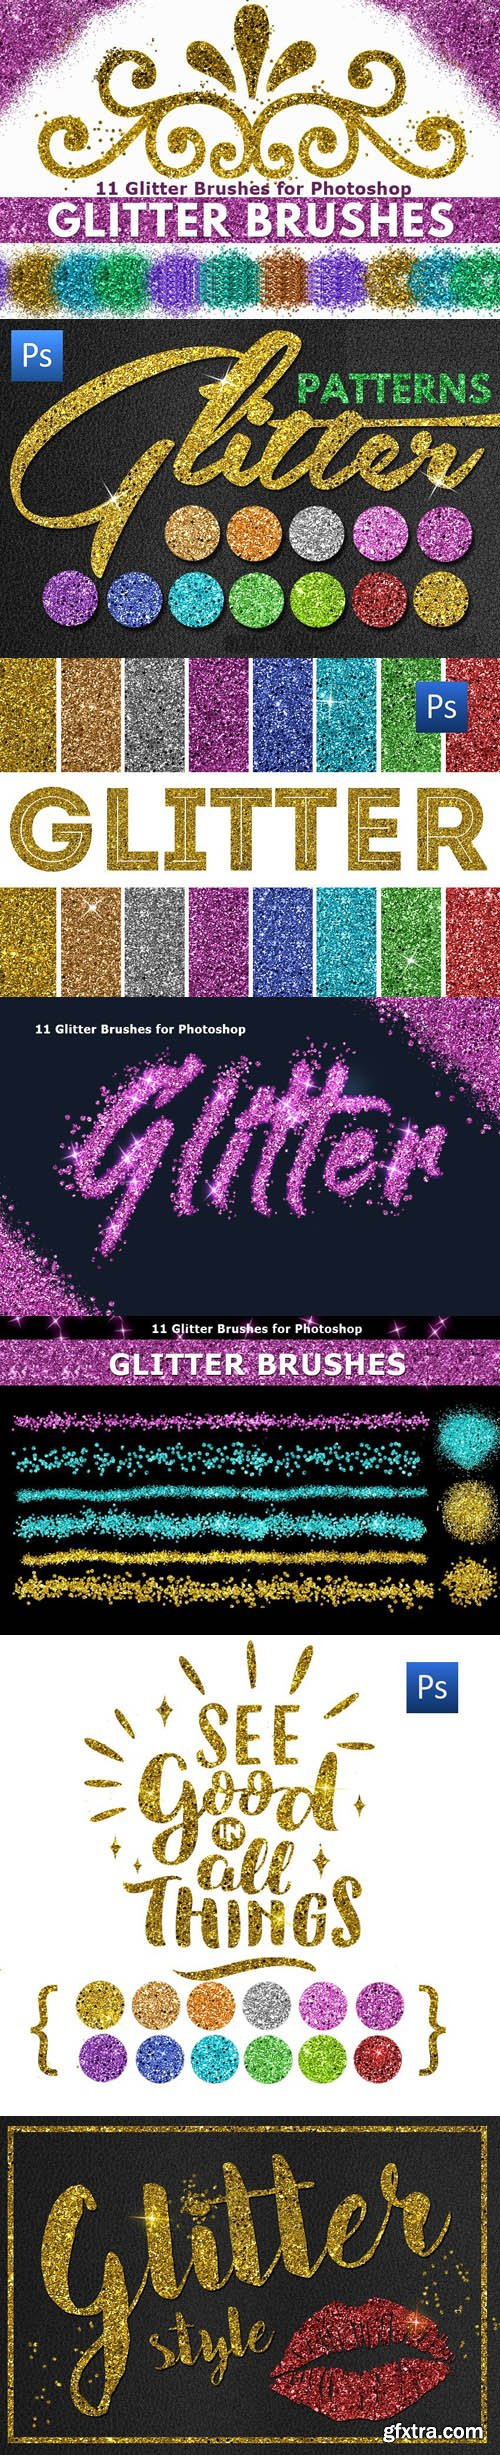 Seamless Glitter - Photoshop Brushes & Patterns Collection